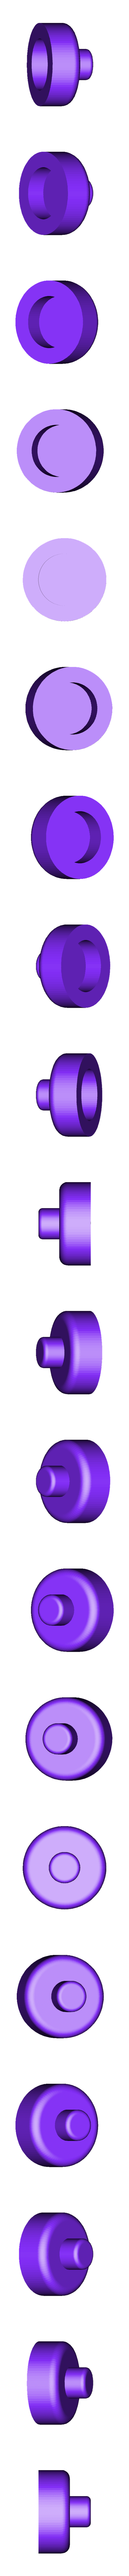 spring end1.stl Download STL file Tiny Functional Cannon Ball With Trigger Mechanism • 3D printing template, anil-baris